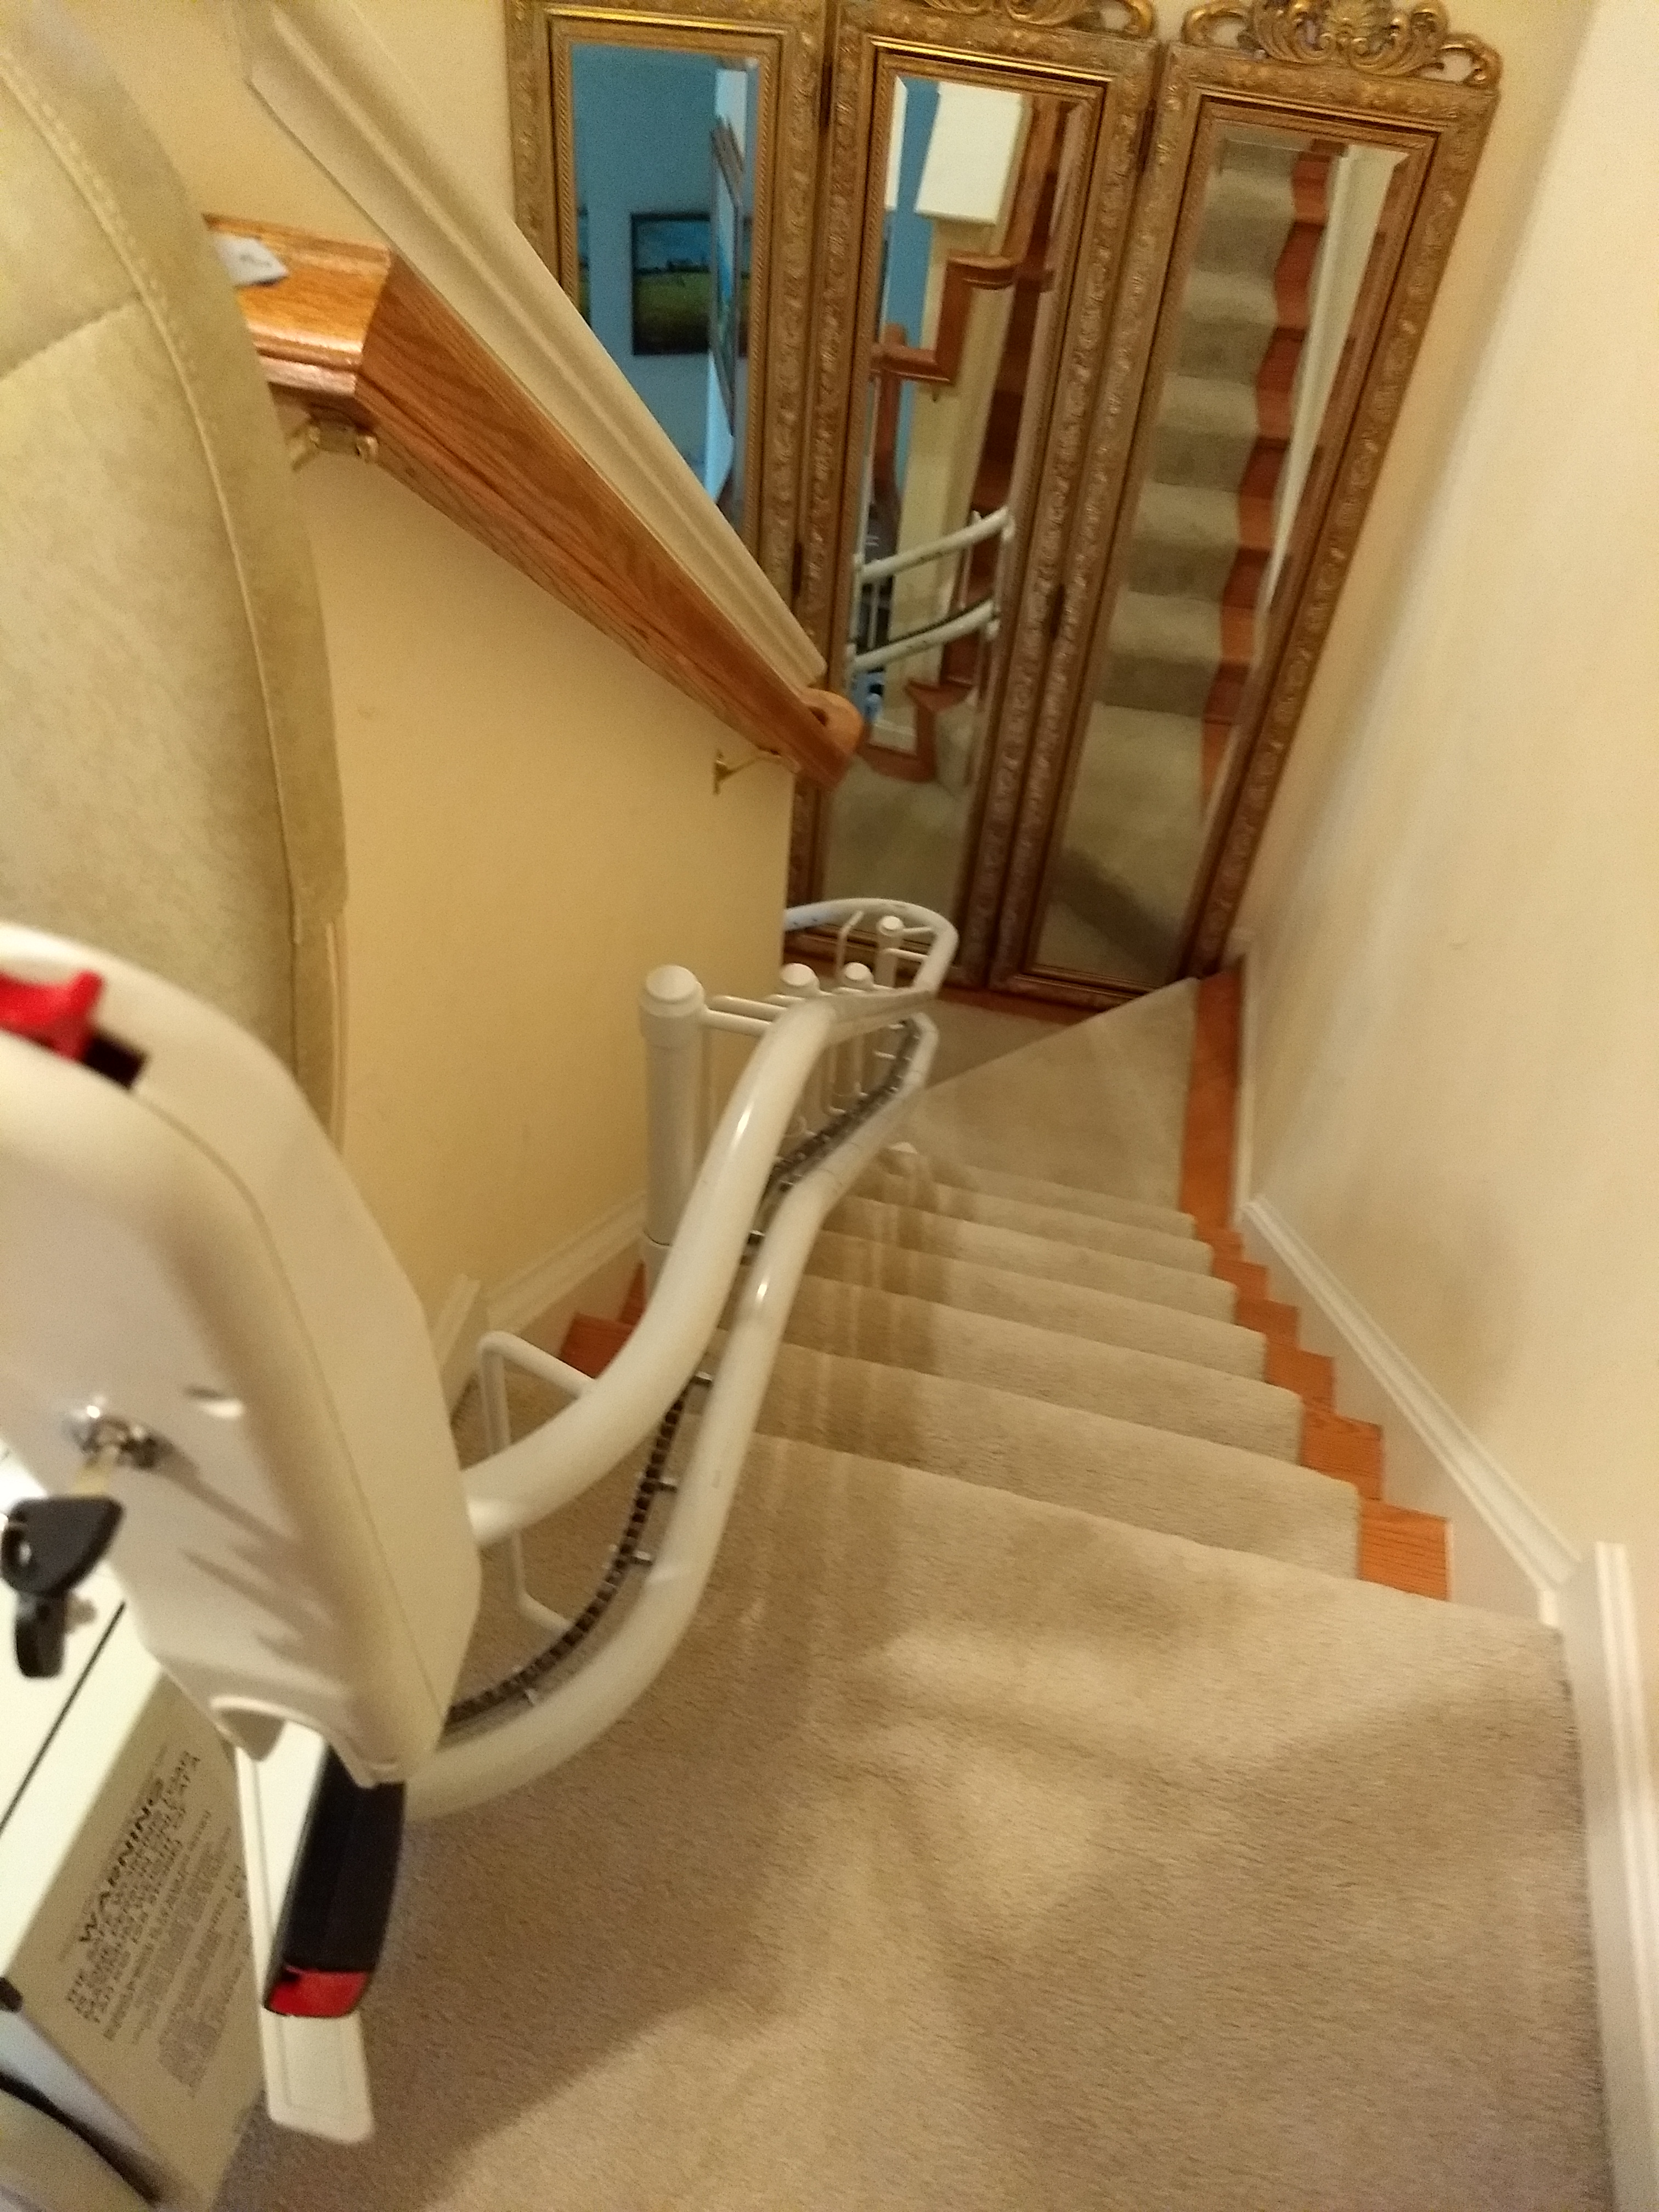 Ameriglide Reviews 108 Of Sitejabber. Wiring. Ameriglide Stair Lift Chair Wiring Diagram At Scoala.co